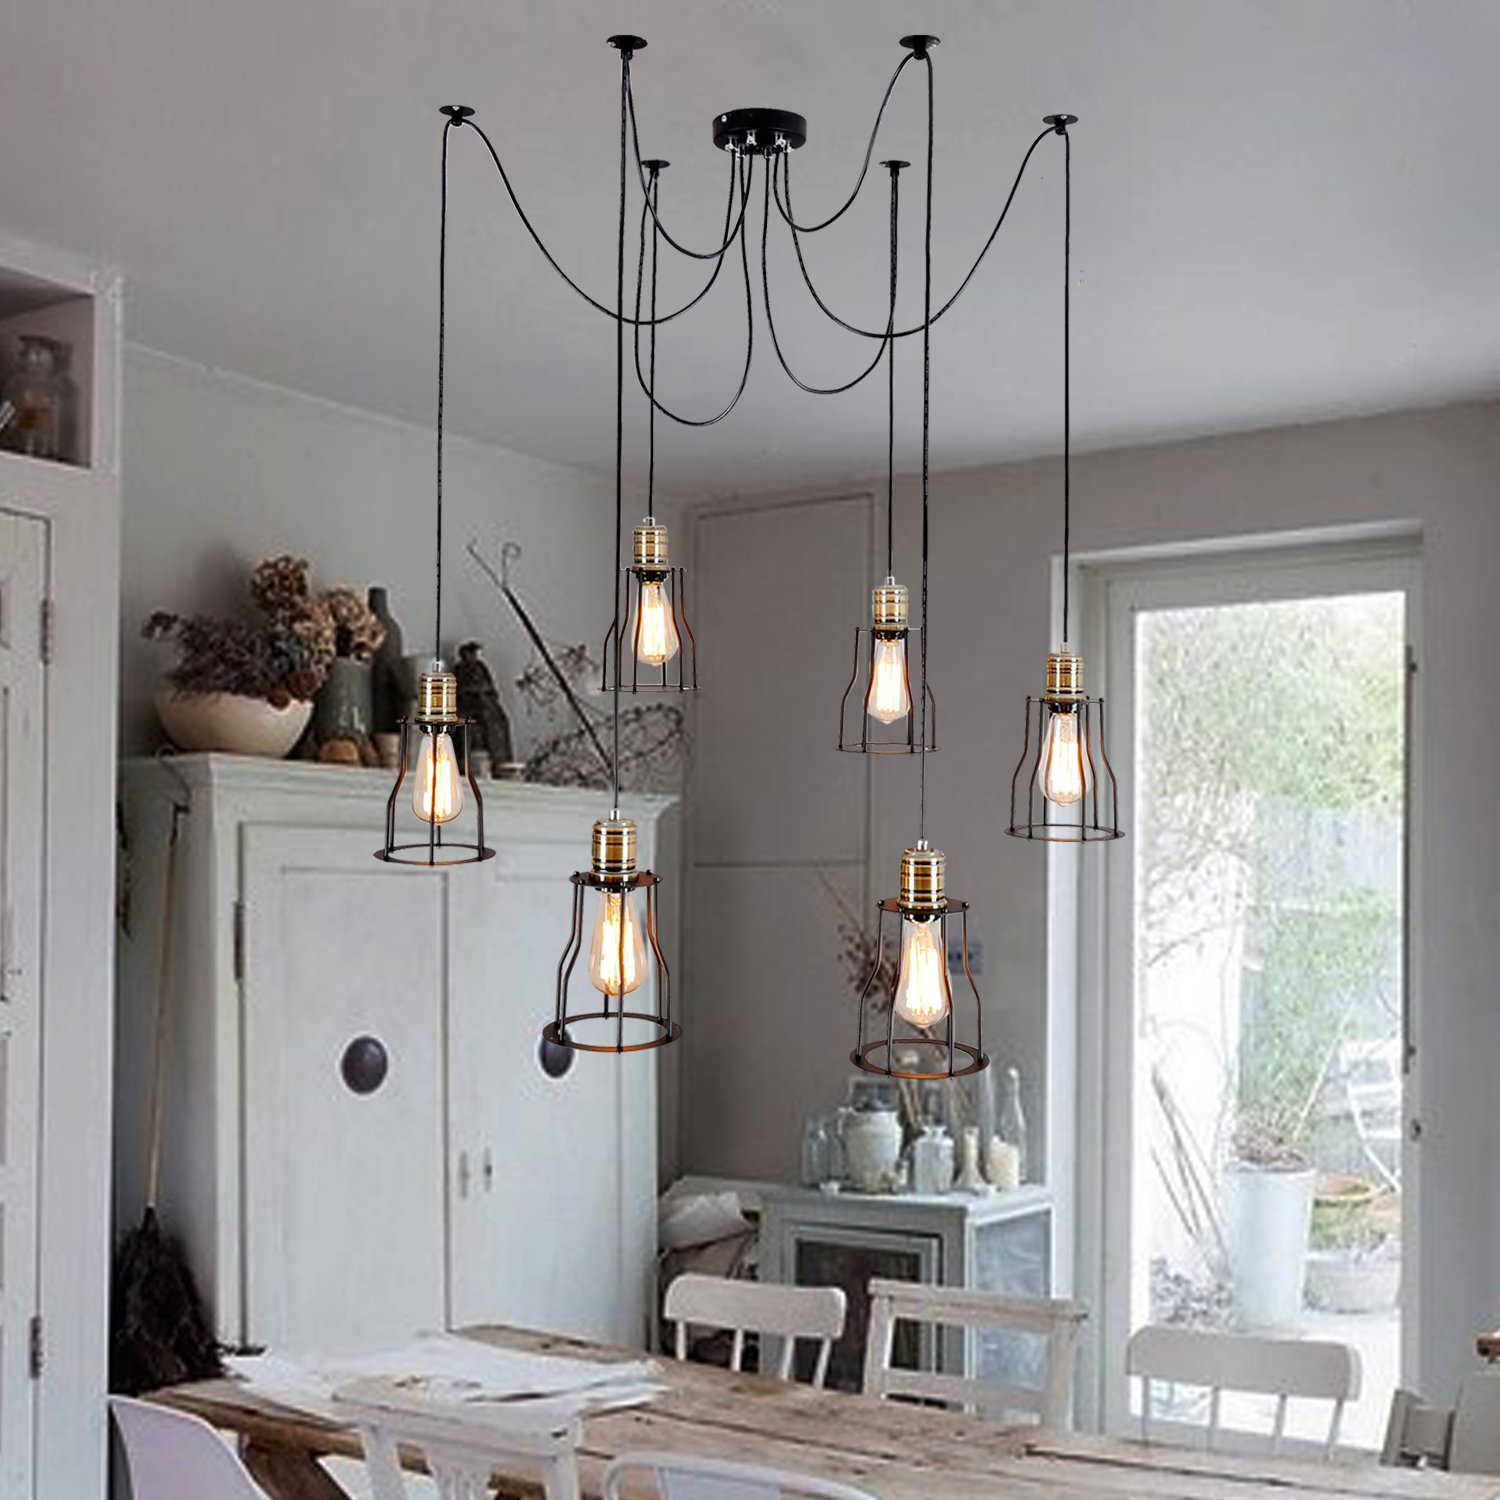 Unitary Brand Vintage Large Barn Chandelier Max 360w with 6 Lights